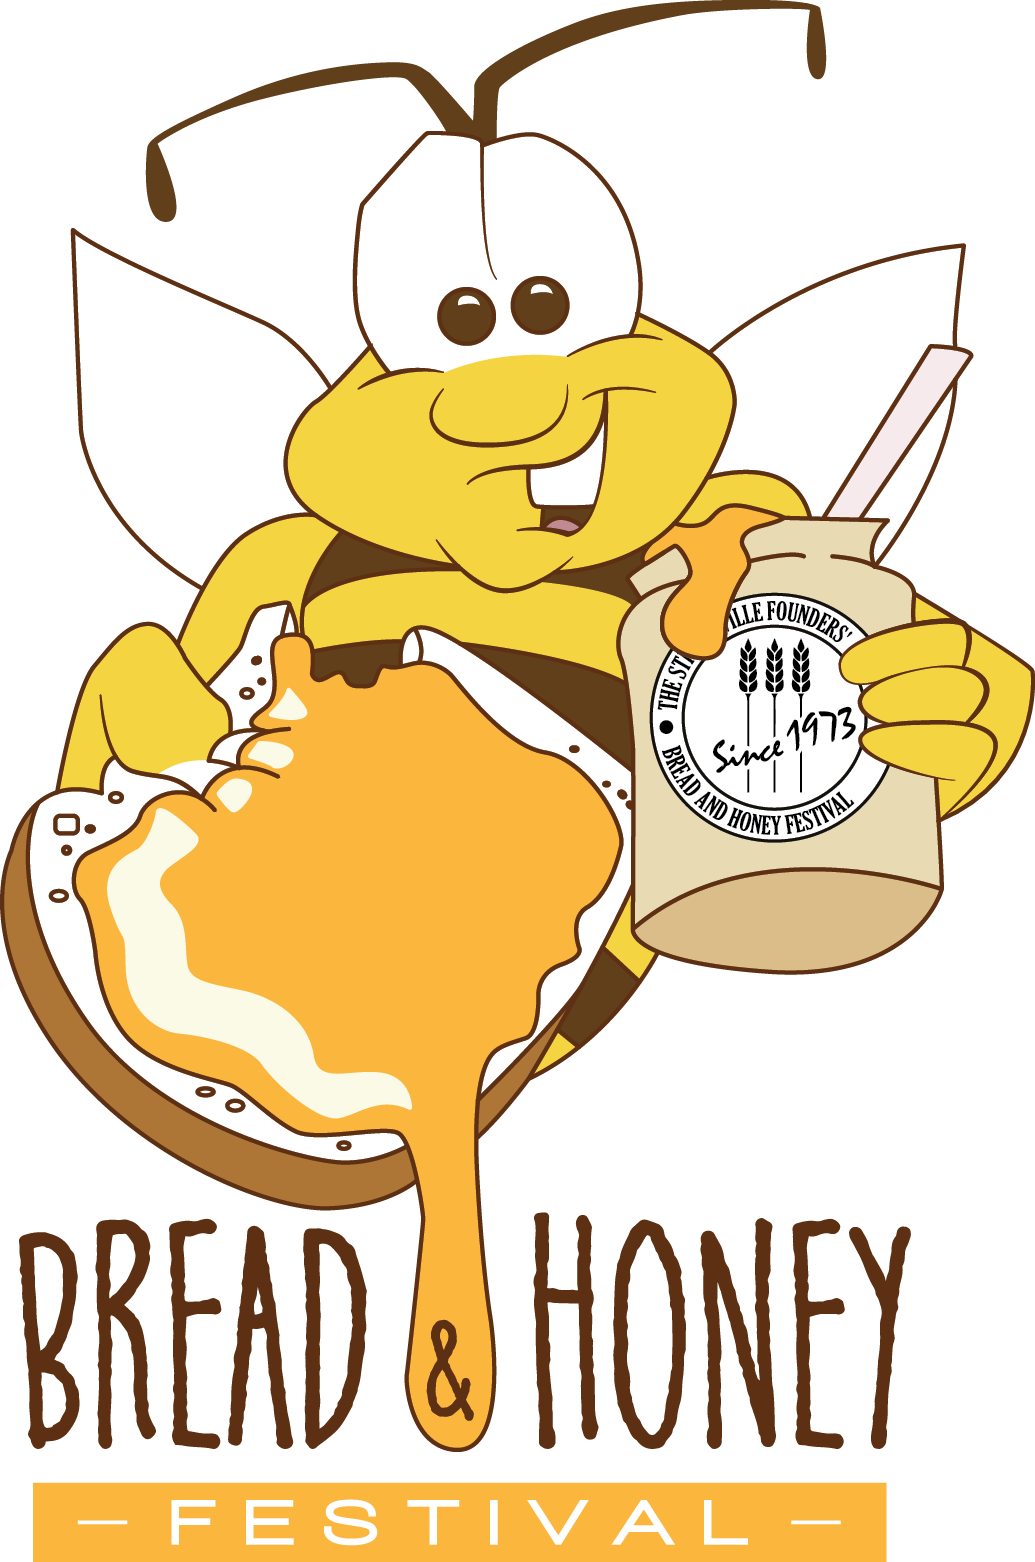 Bread & Honey Festival